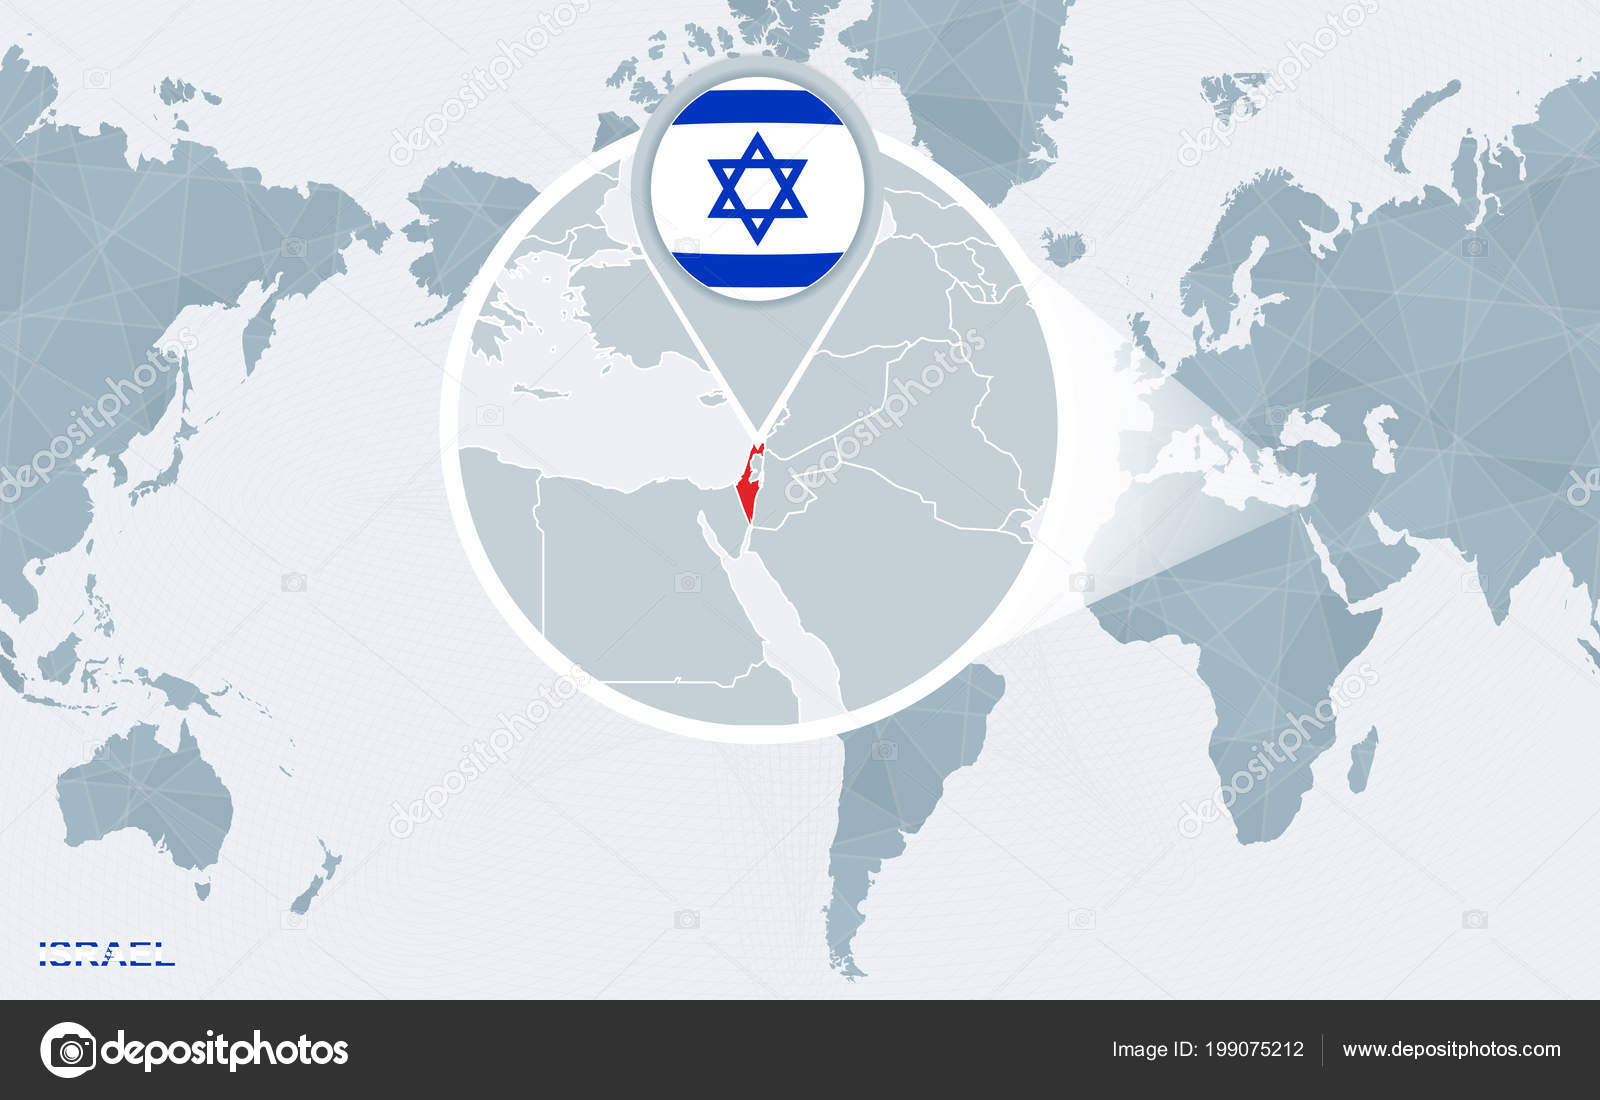 Isreal On World Map.World Map Centered America Magnified Israel Blue Flag Map Israel